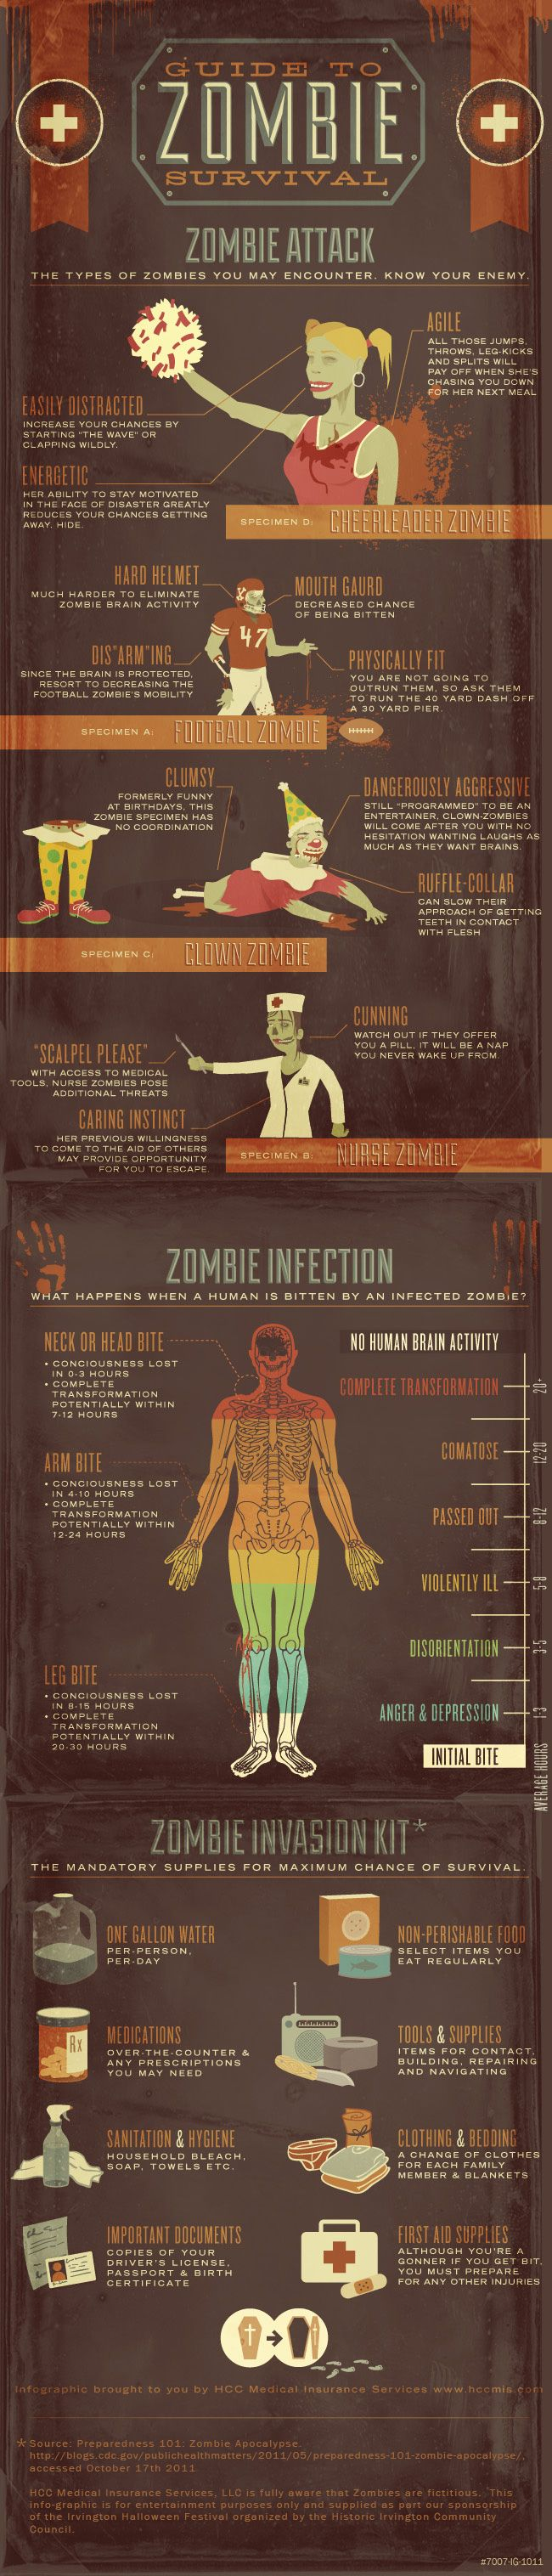 Zombie-Survival-Guide-infographic      Find Always more on http://infographicsmania.com